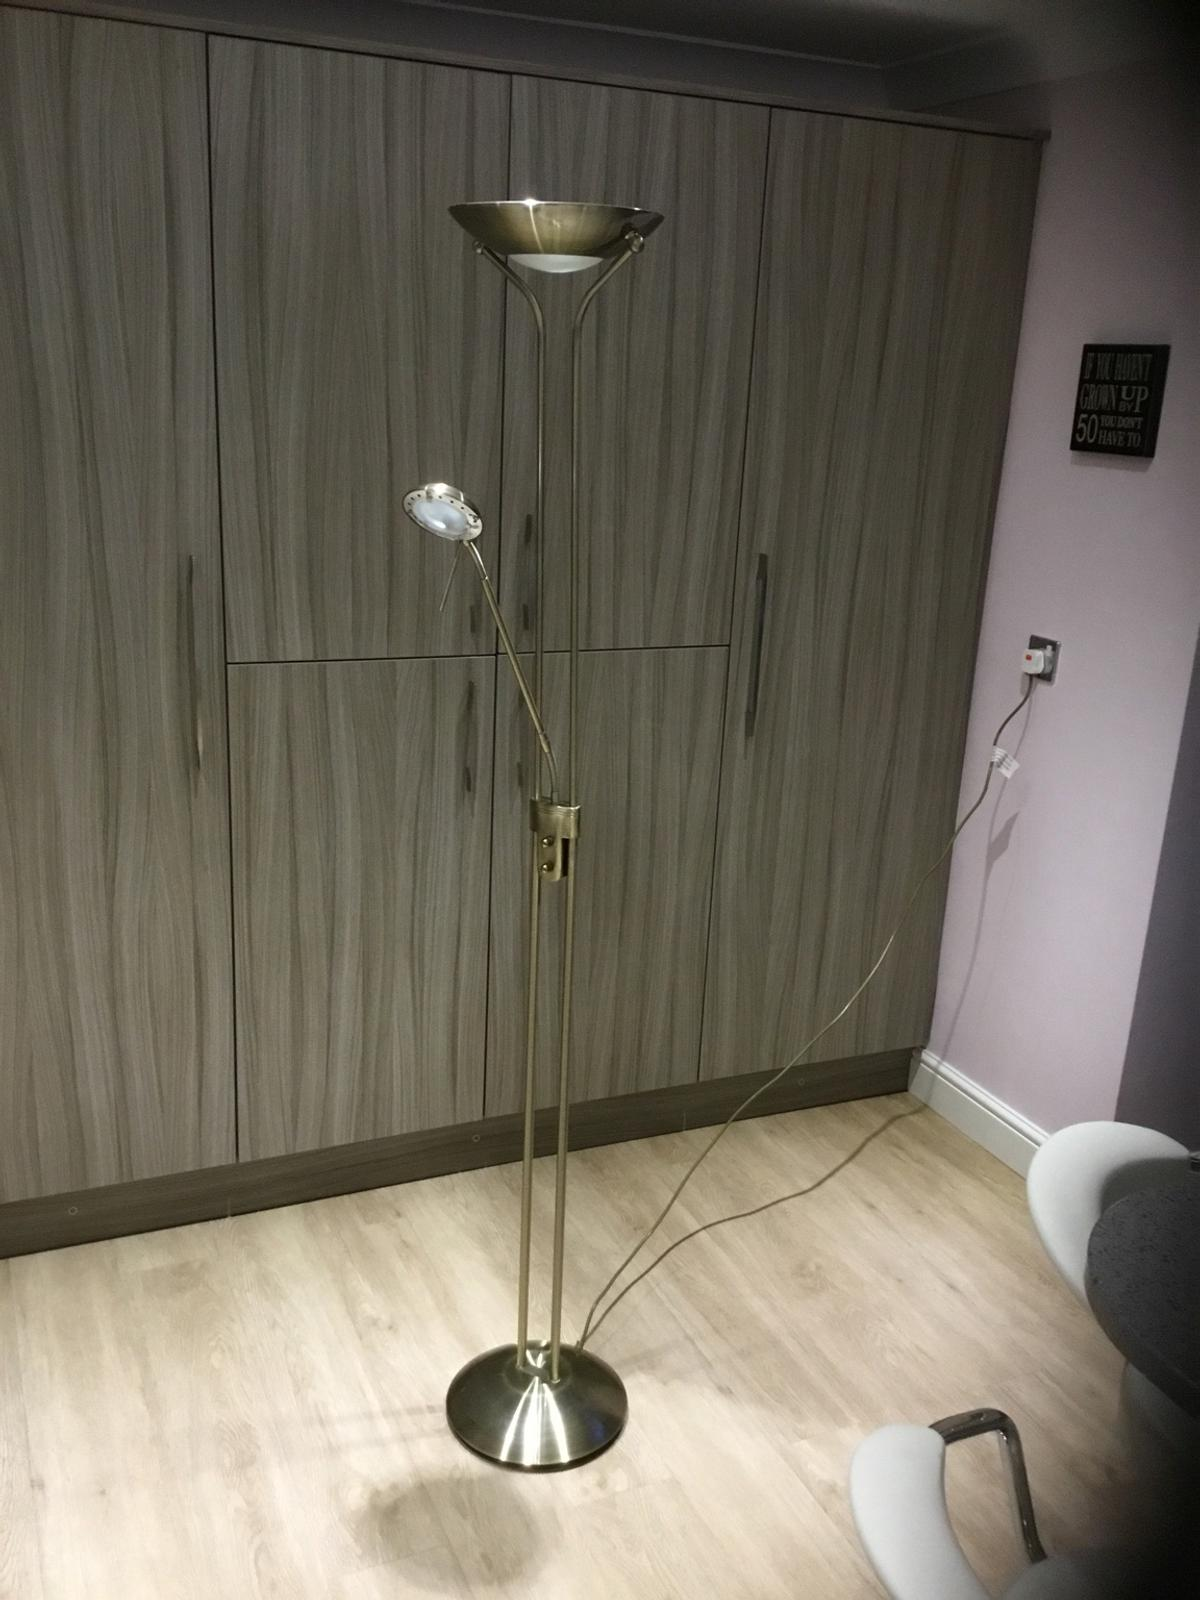 Floor Reading Lamp With Dimmer